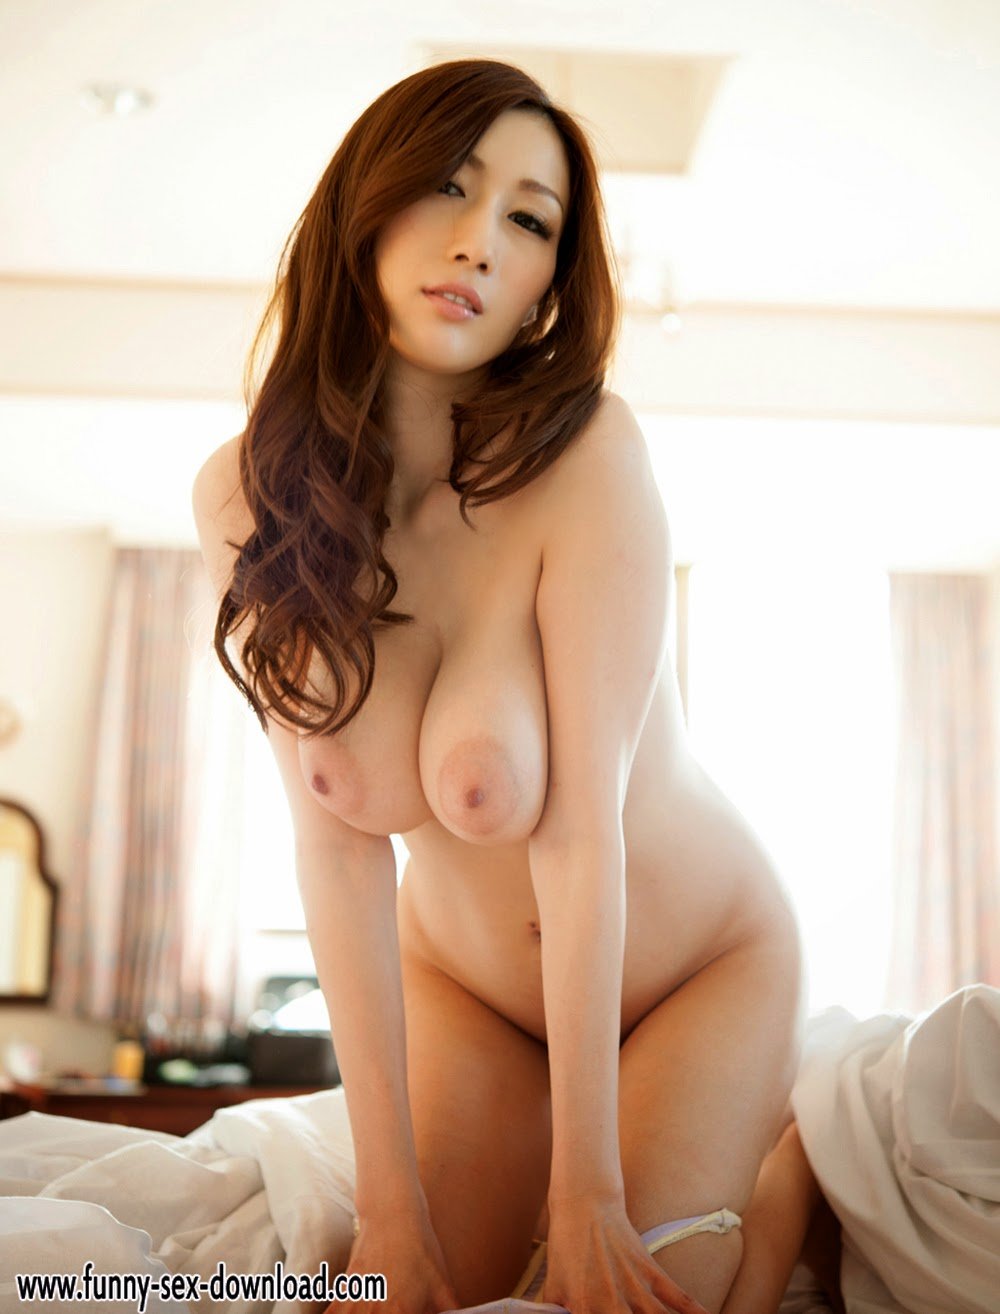 Sexy Nude Korean Women 80